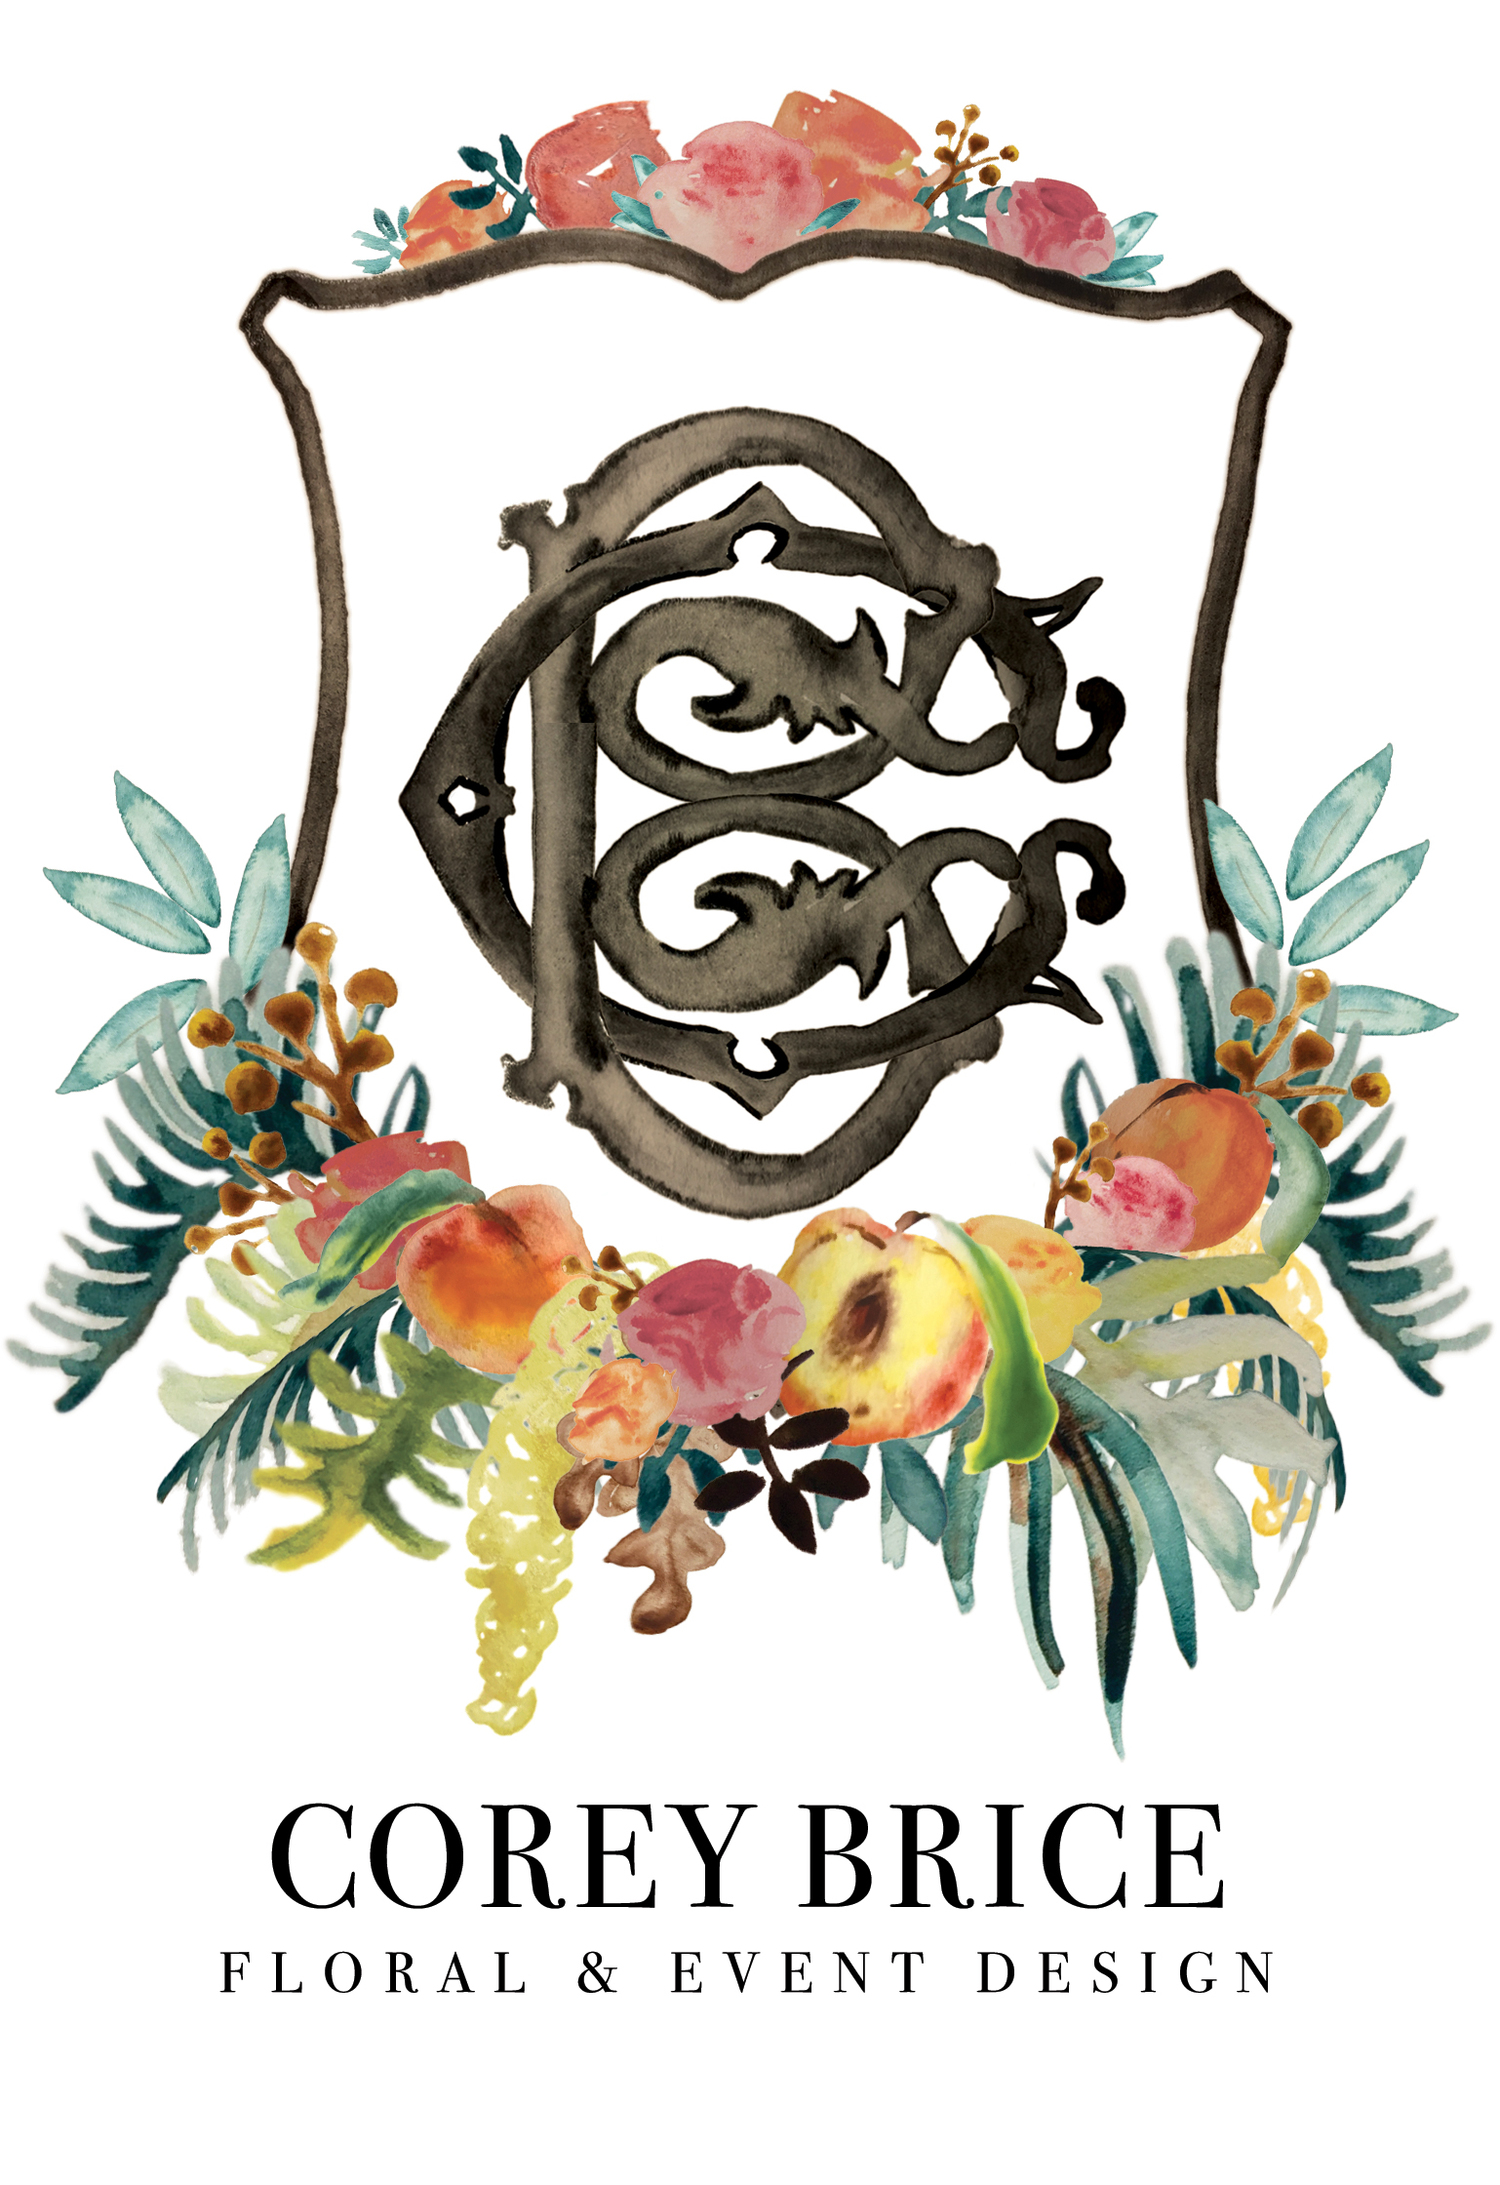 Corey Brice Design